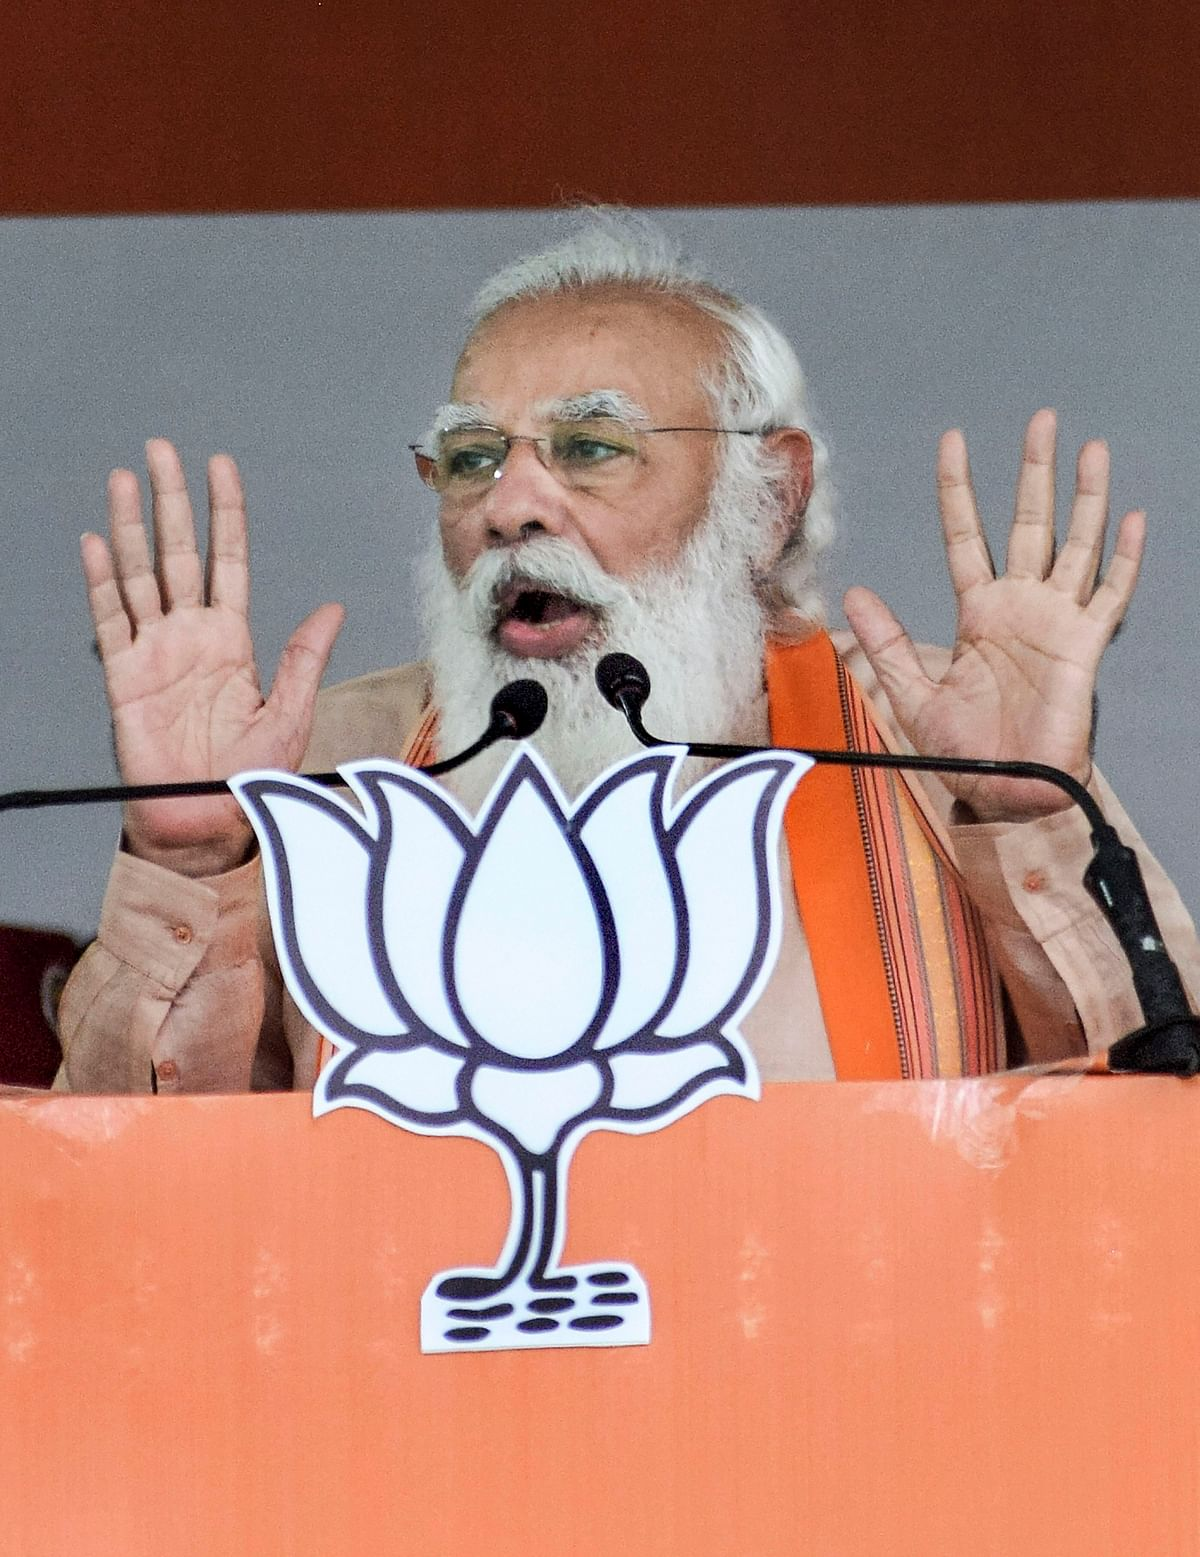 Prime Minister Narendra Modi speaks during a BJP election campaign rally, ahead of West Bengal assembly polls, in Purulia district, Thursday, March 18, 2021